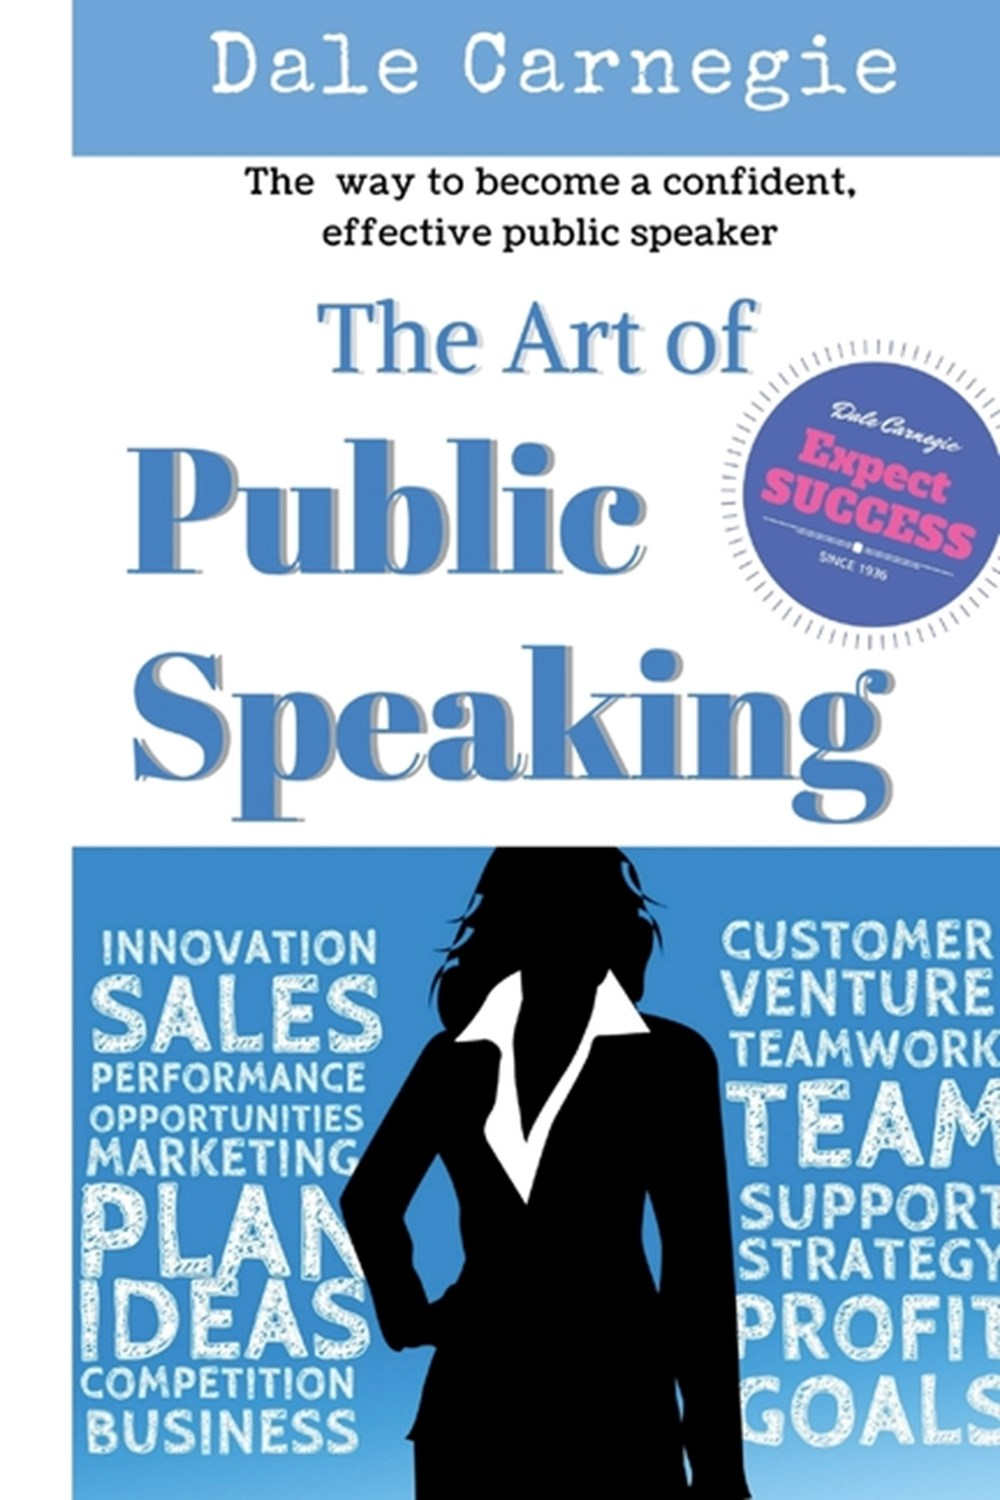 Art of Public Speaking The best way to become a confident, effective public speaker.